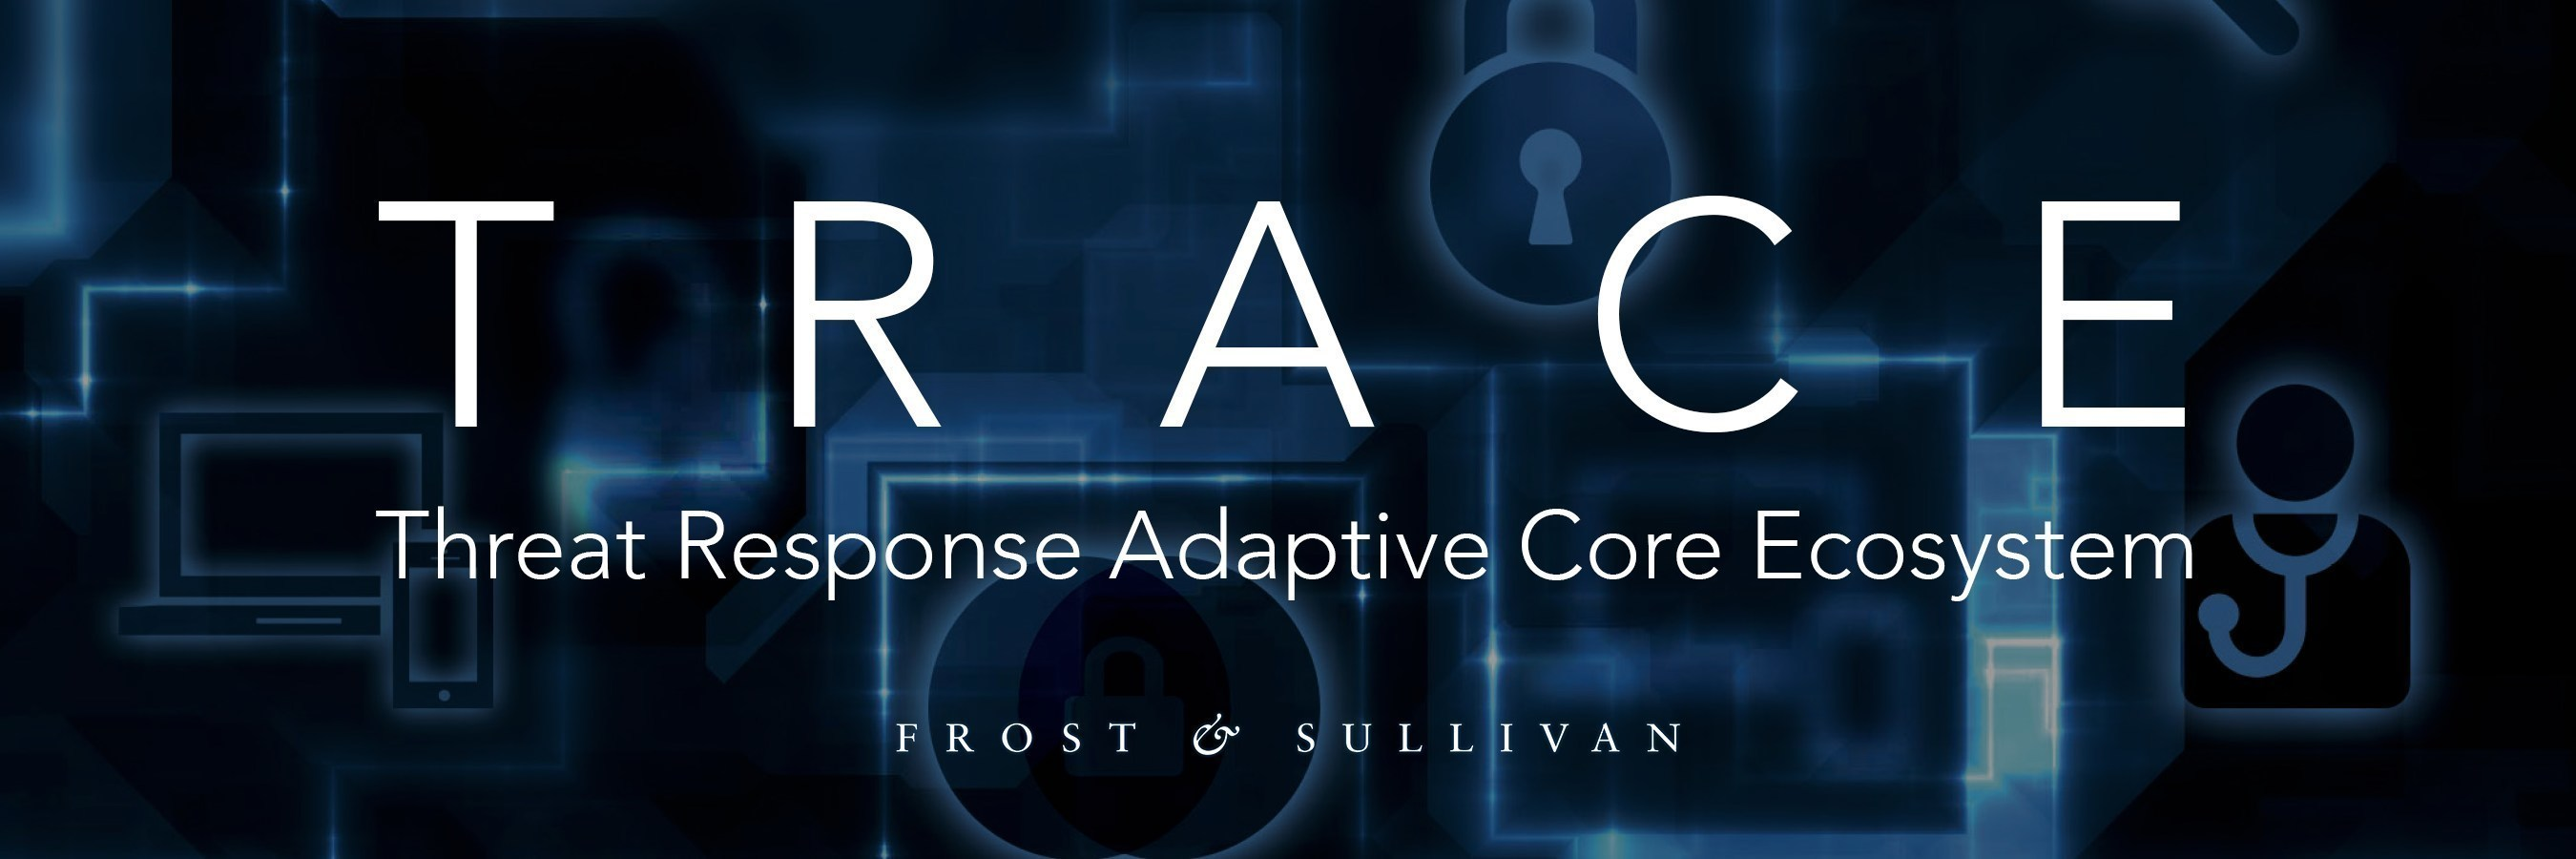 Threat Response Adaptive Core Ecosystem (TRACE) defines the new industry standard for holistic